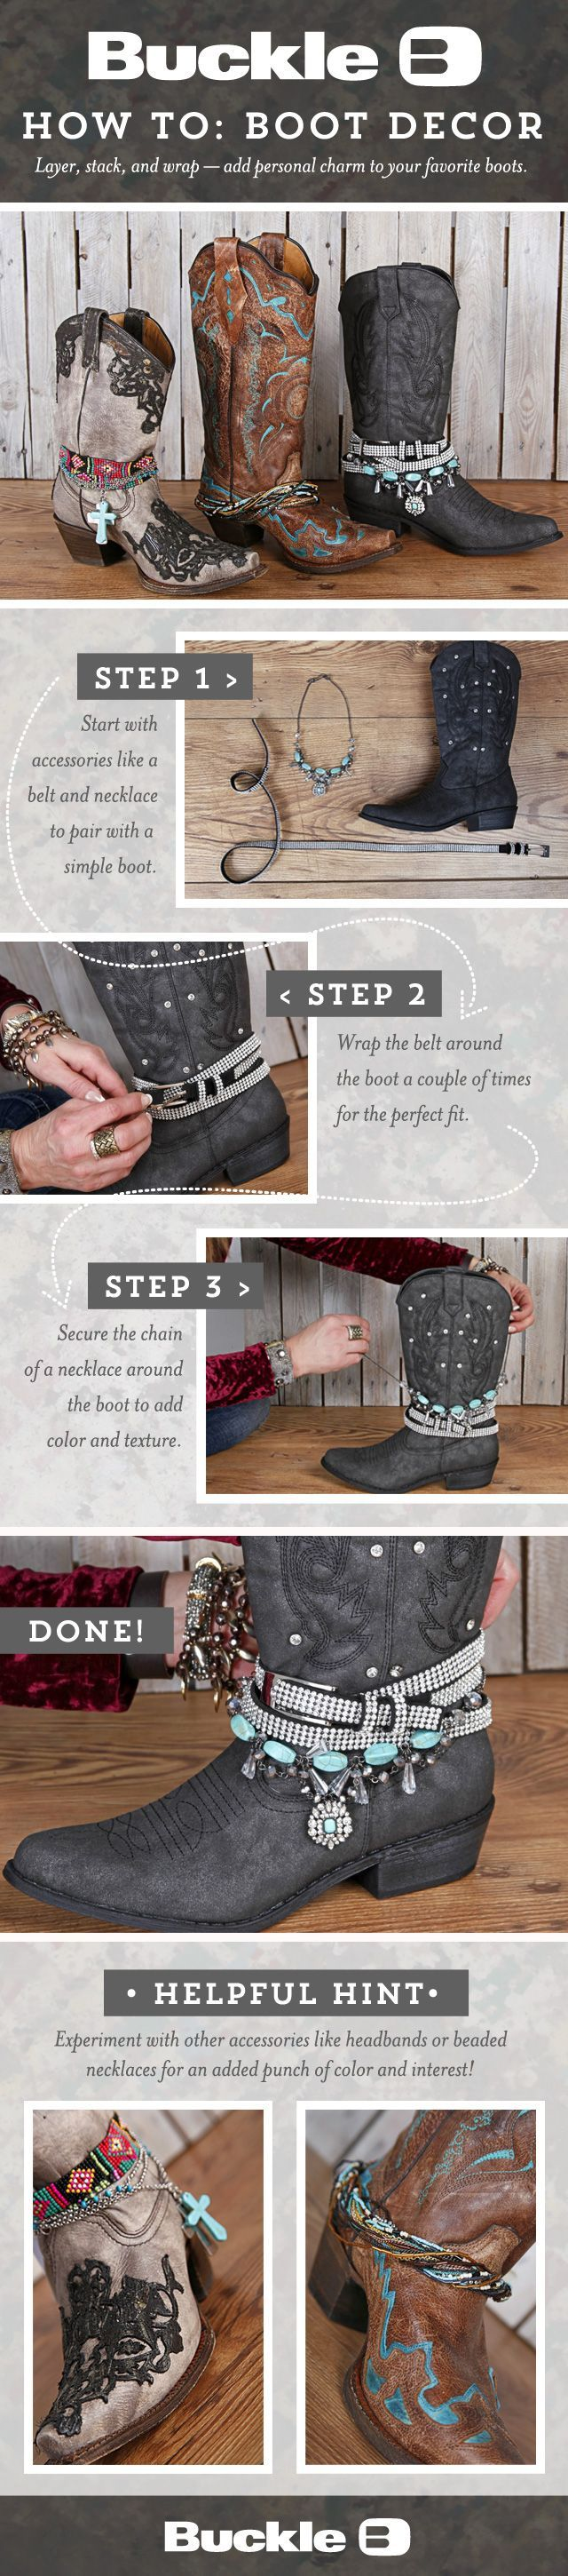 Check out our blog for more details on boot decor! www.bucklestore.blogspot.com